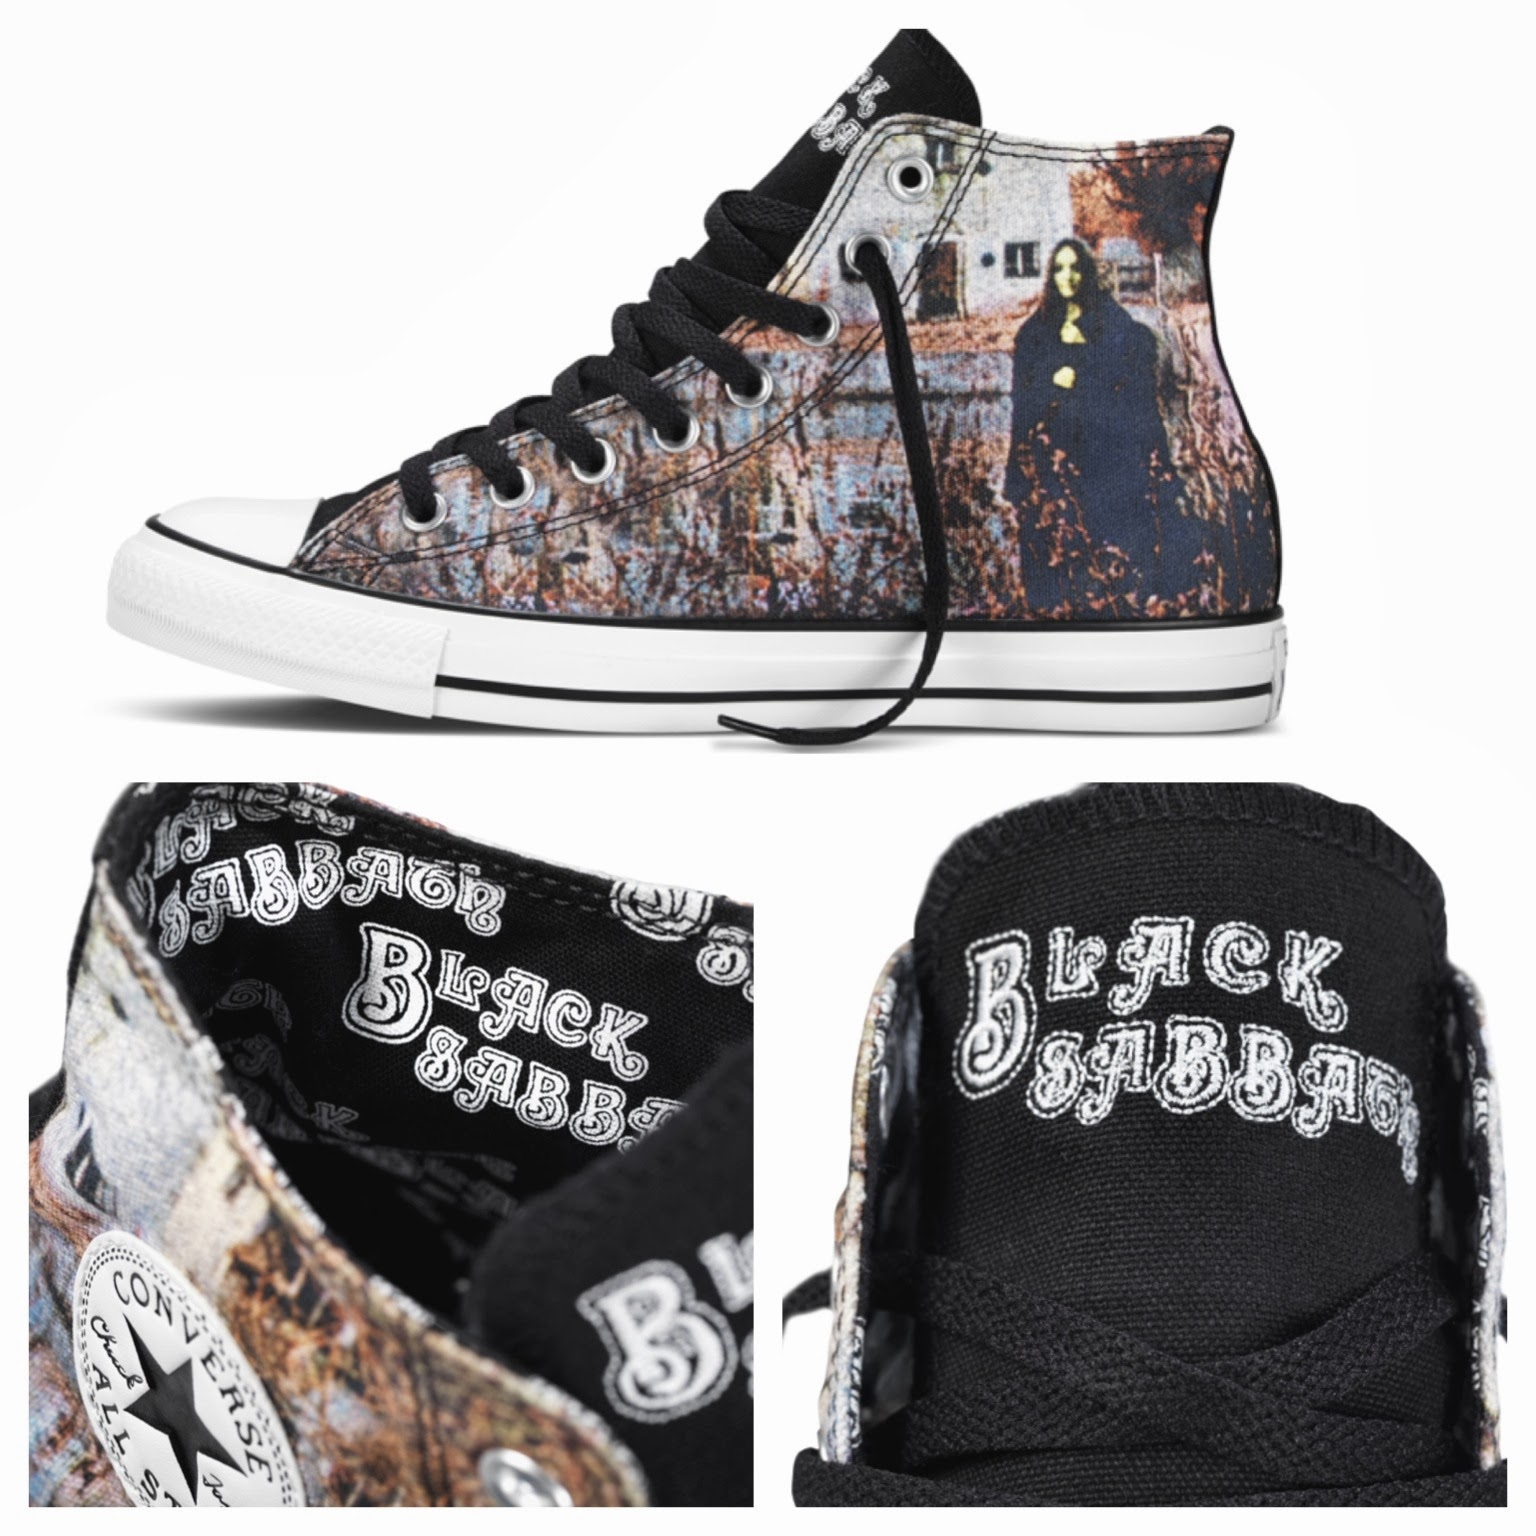 3f8b0cbad113 Fashion  Converse Unveils New Footwear Collection With Legendary ...